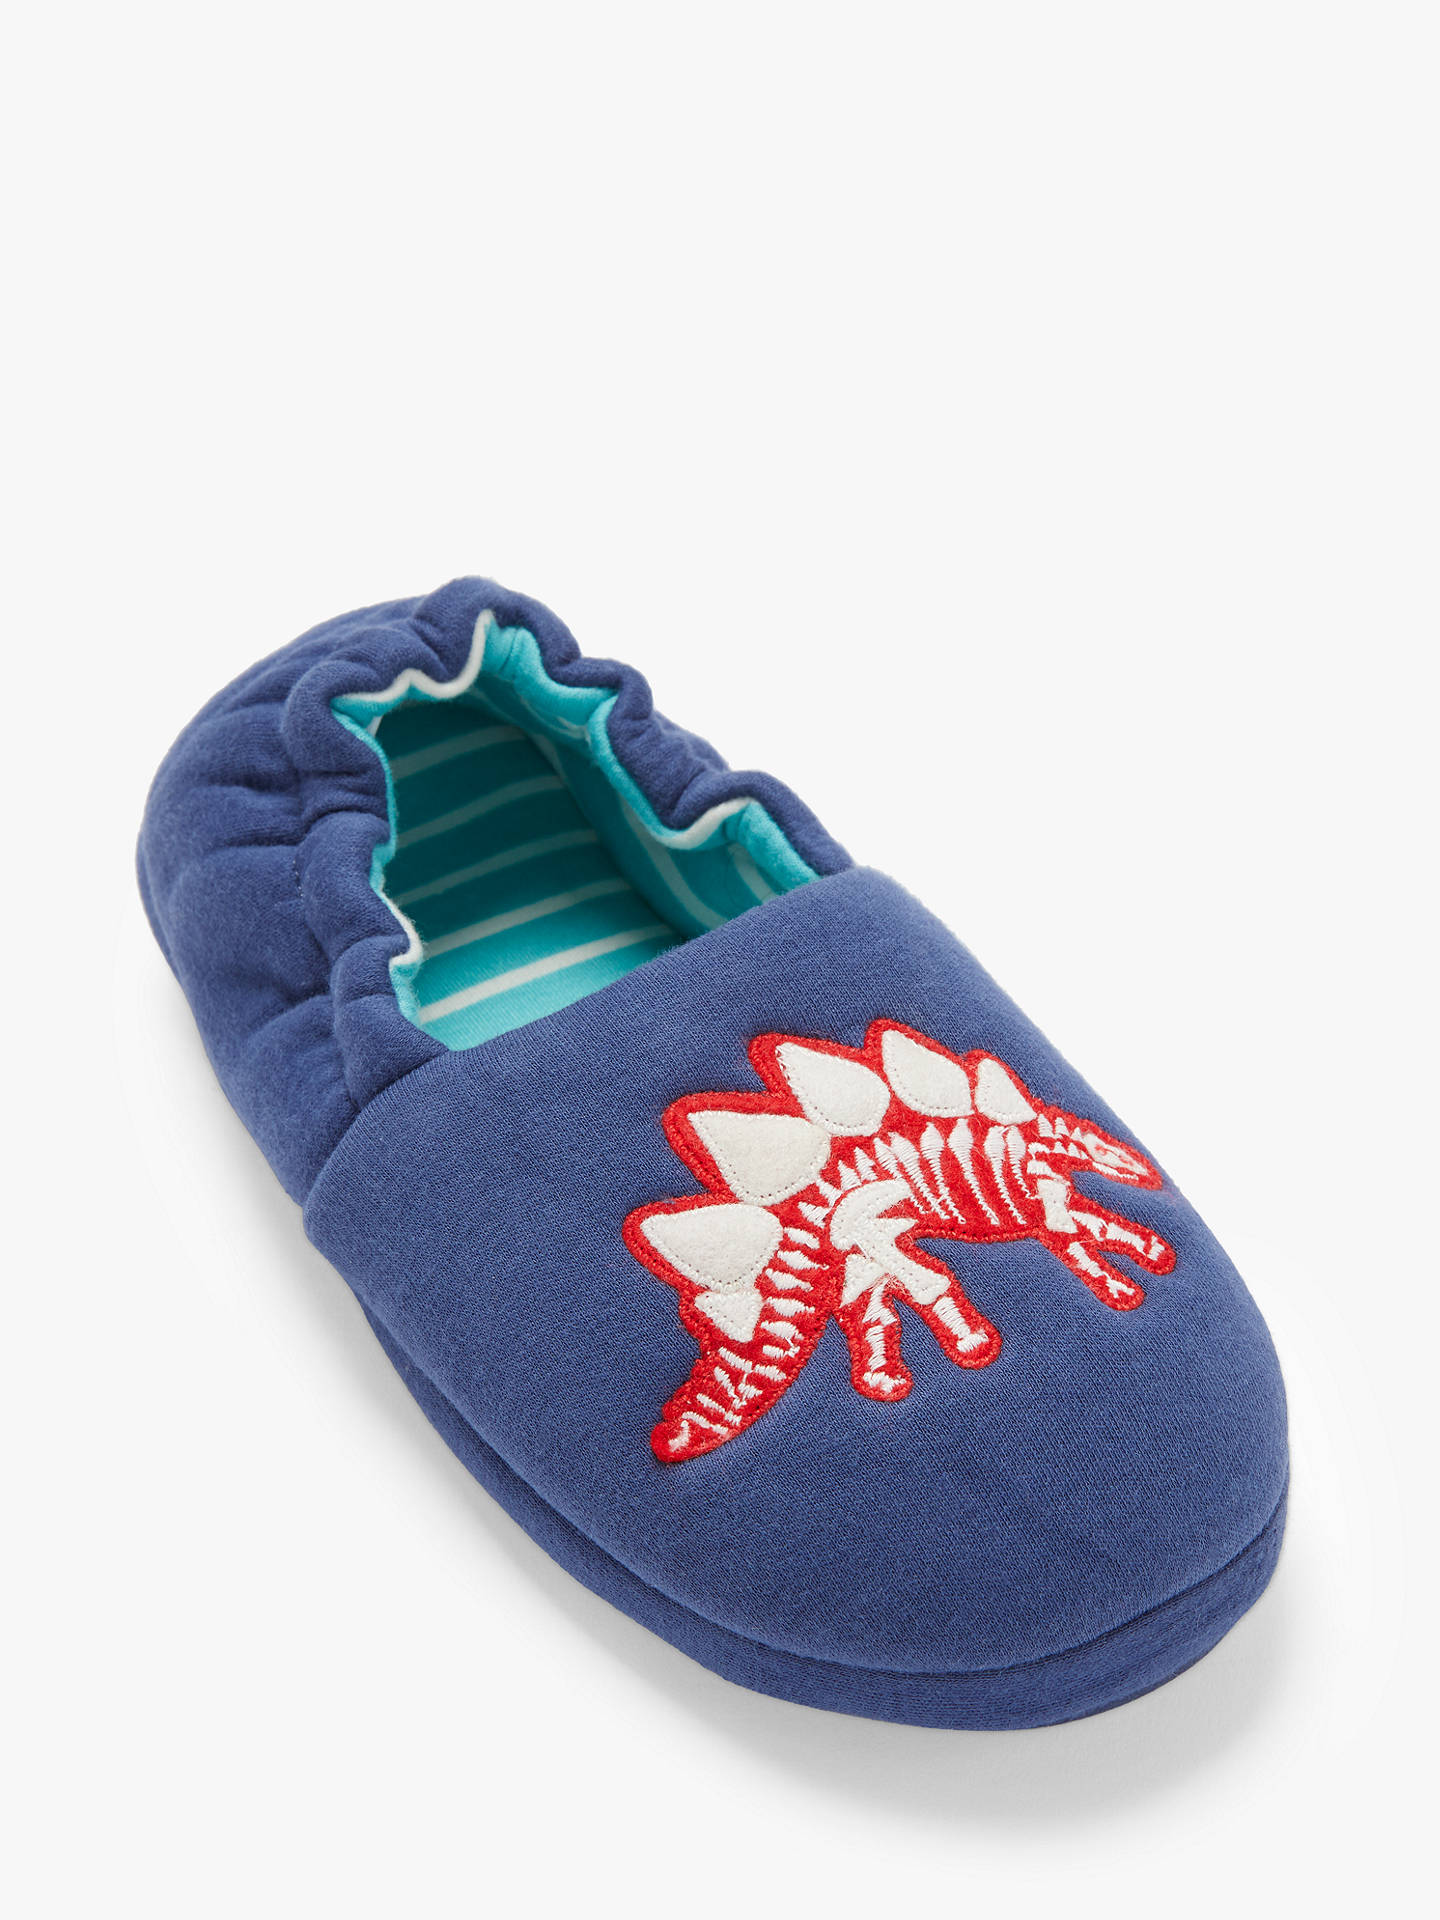 351b5a07aed ... Buy John Lewis   Partners Children s Dino Slippers